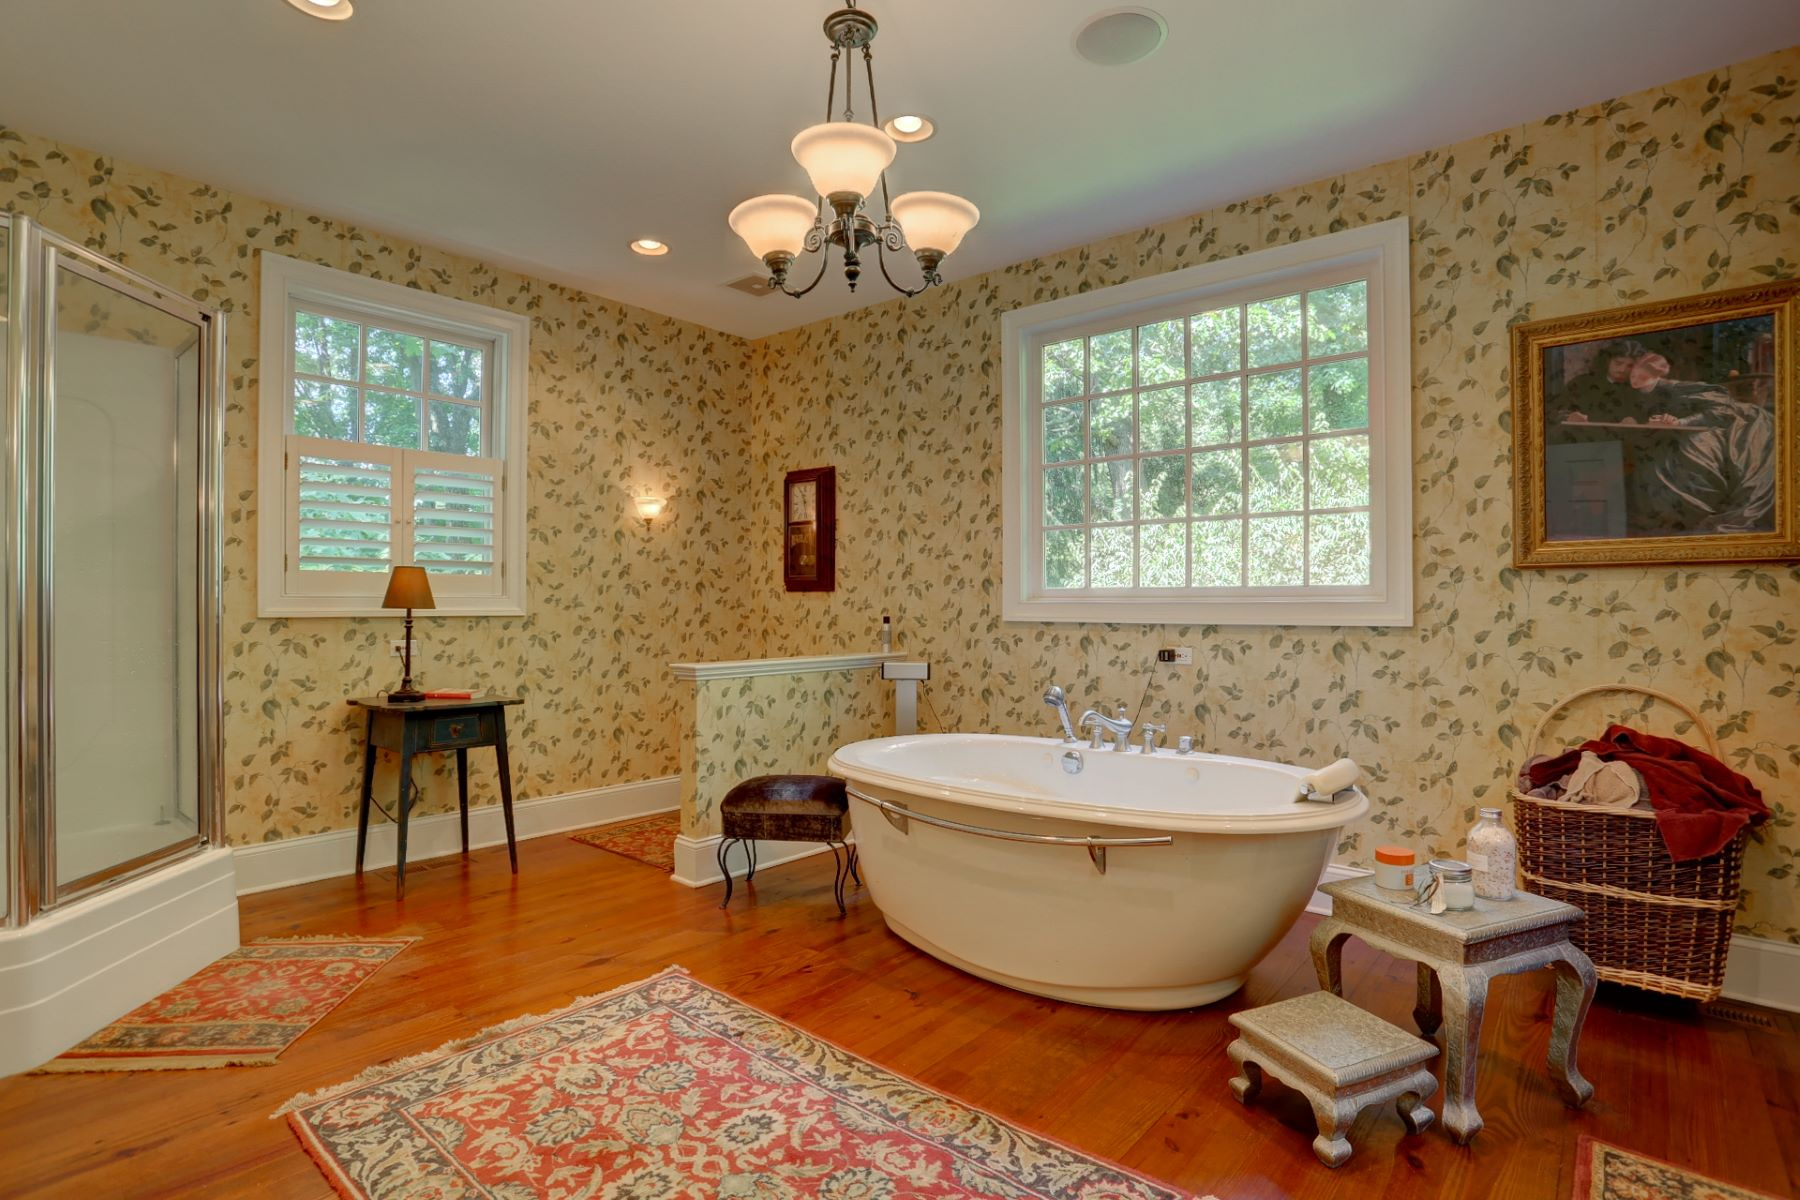 Additional photo for property listing at 23 Warwick Road  Lititz, Pennsylvania 17543 United States